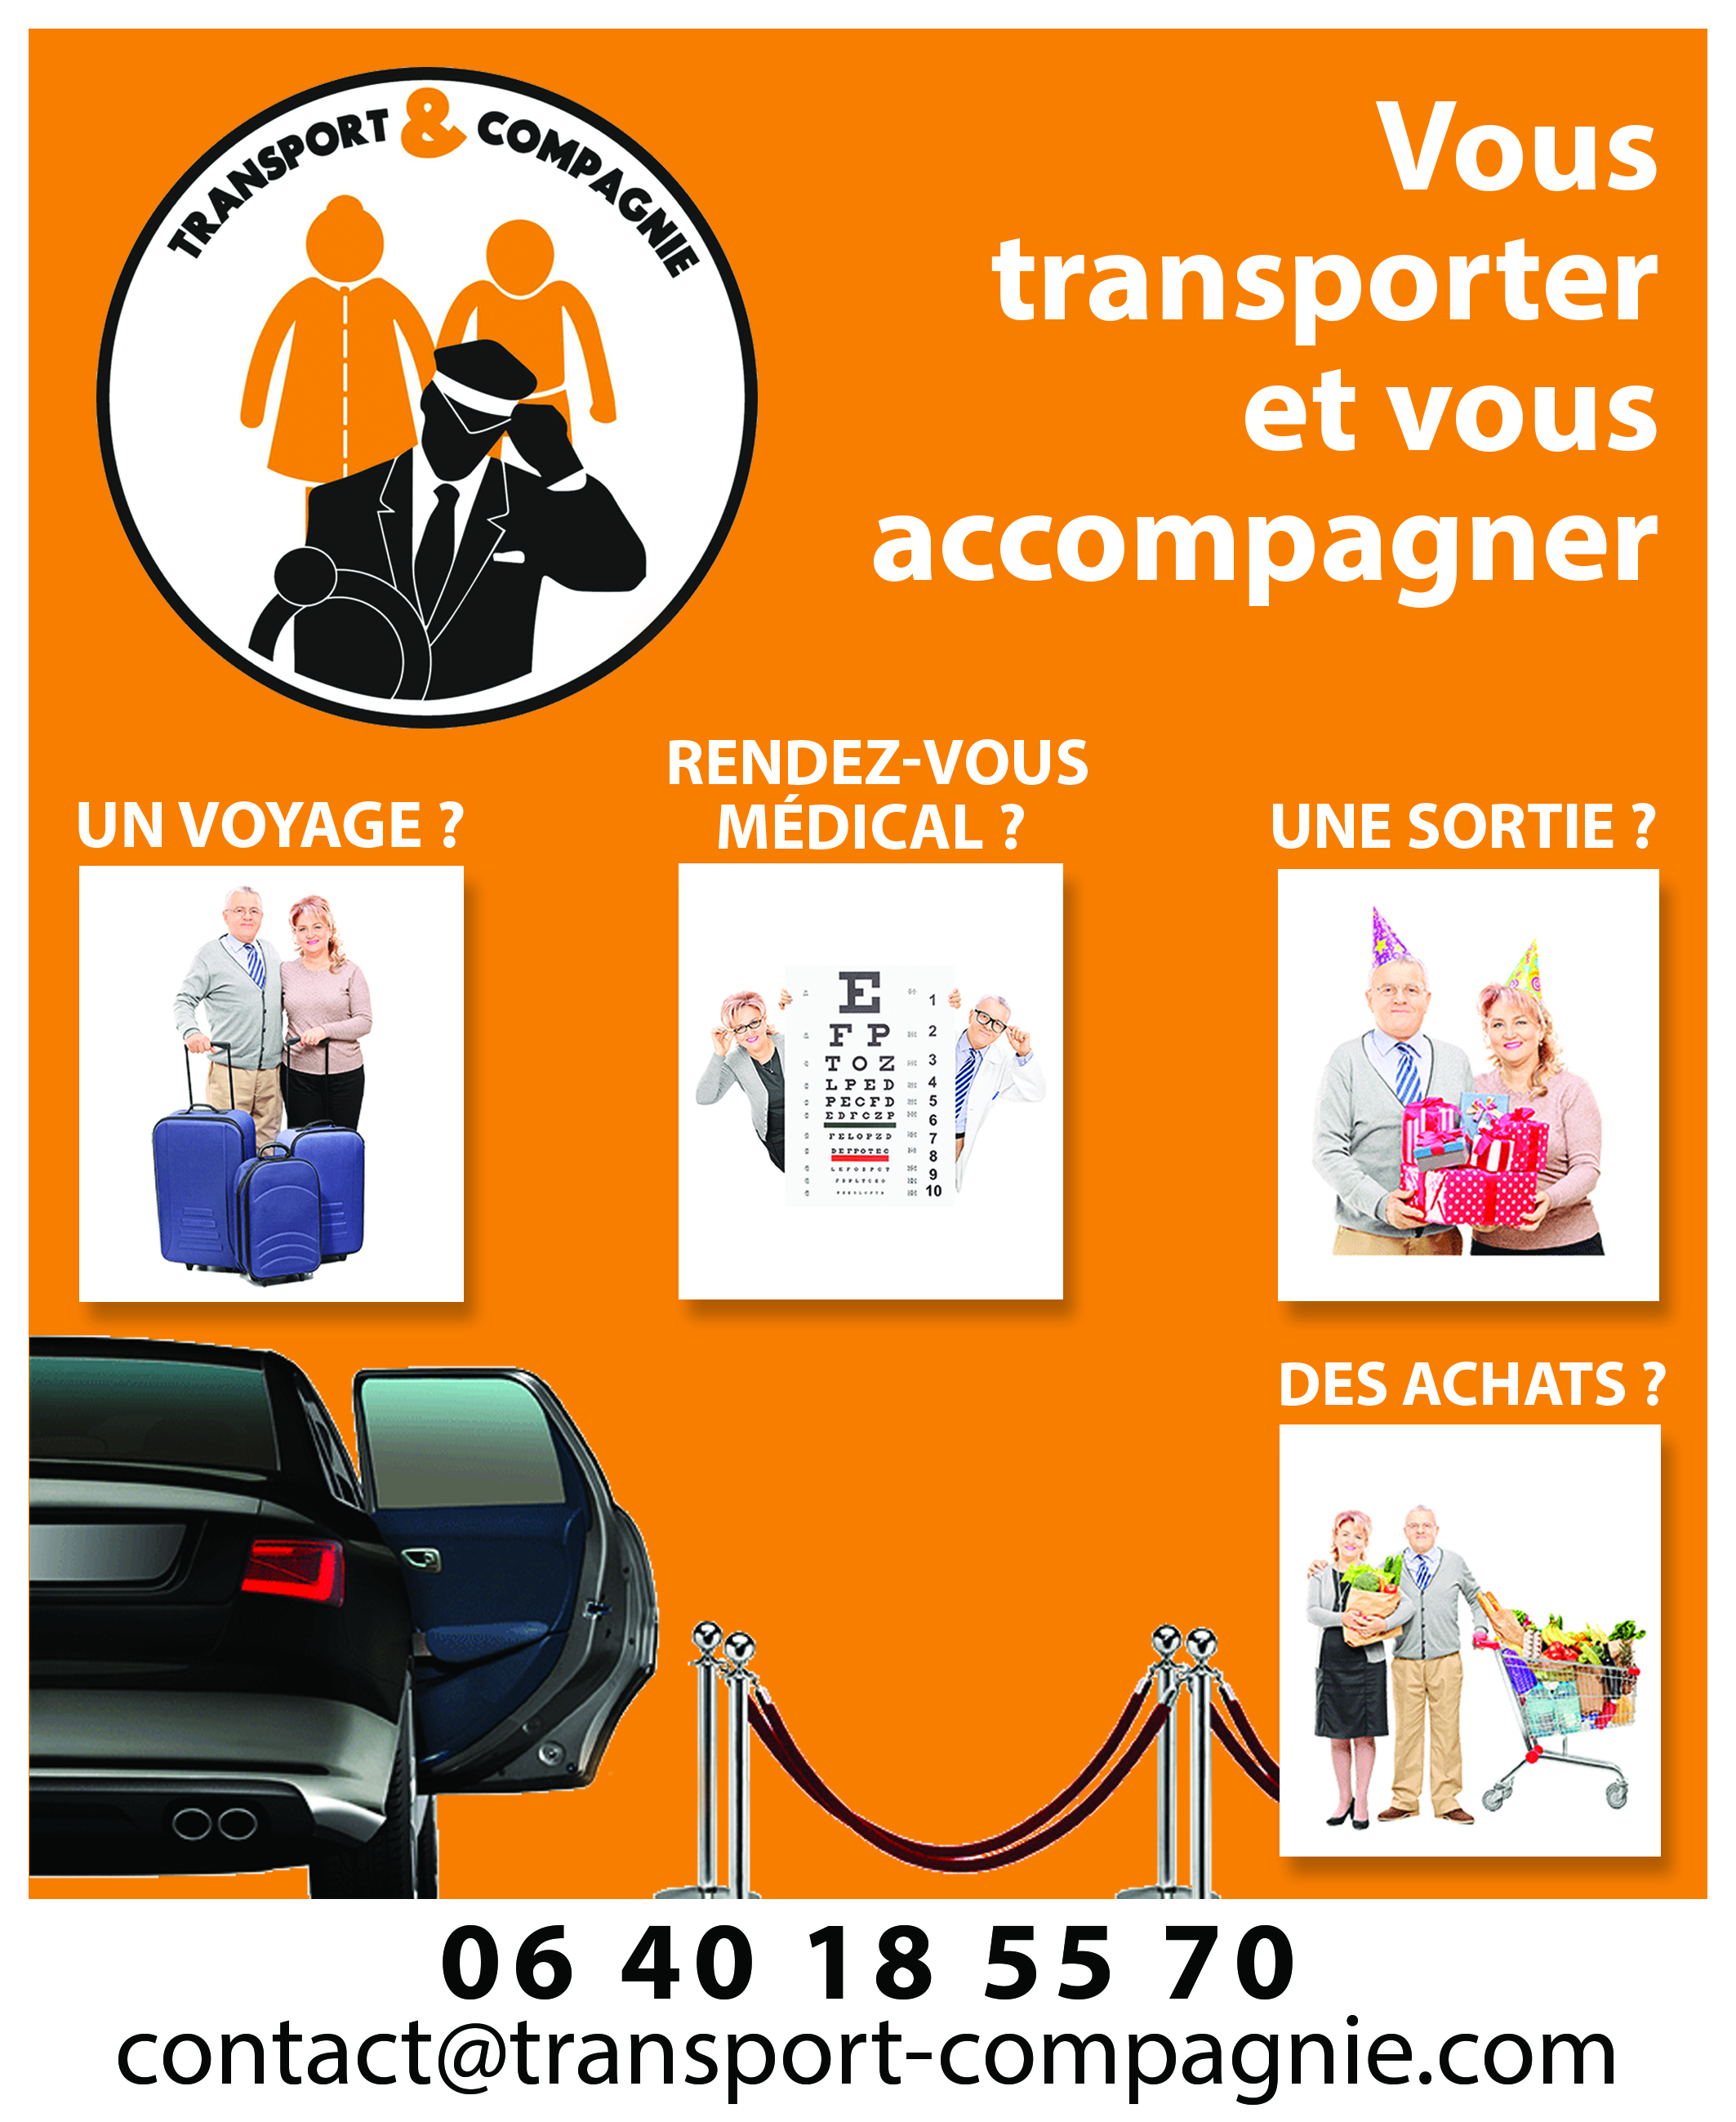 Transport&Compagnie